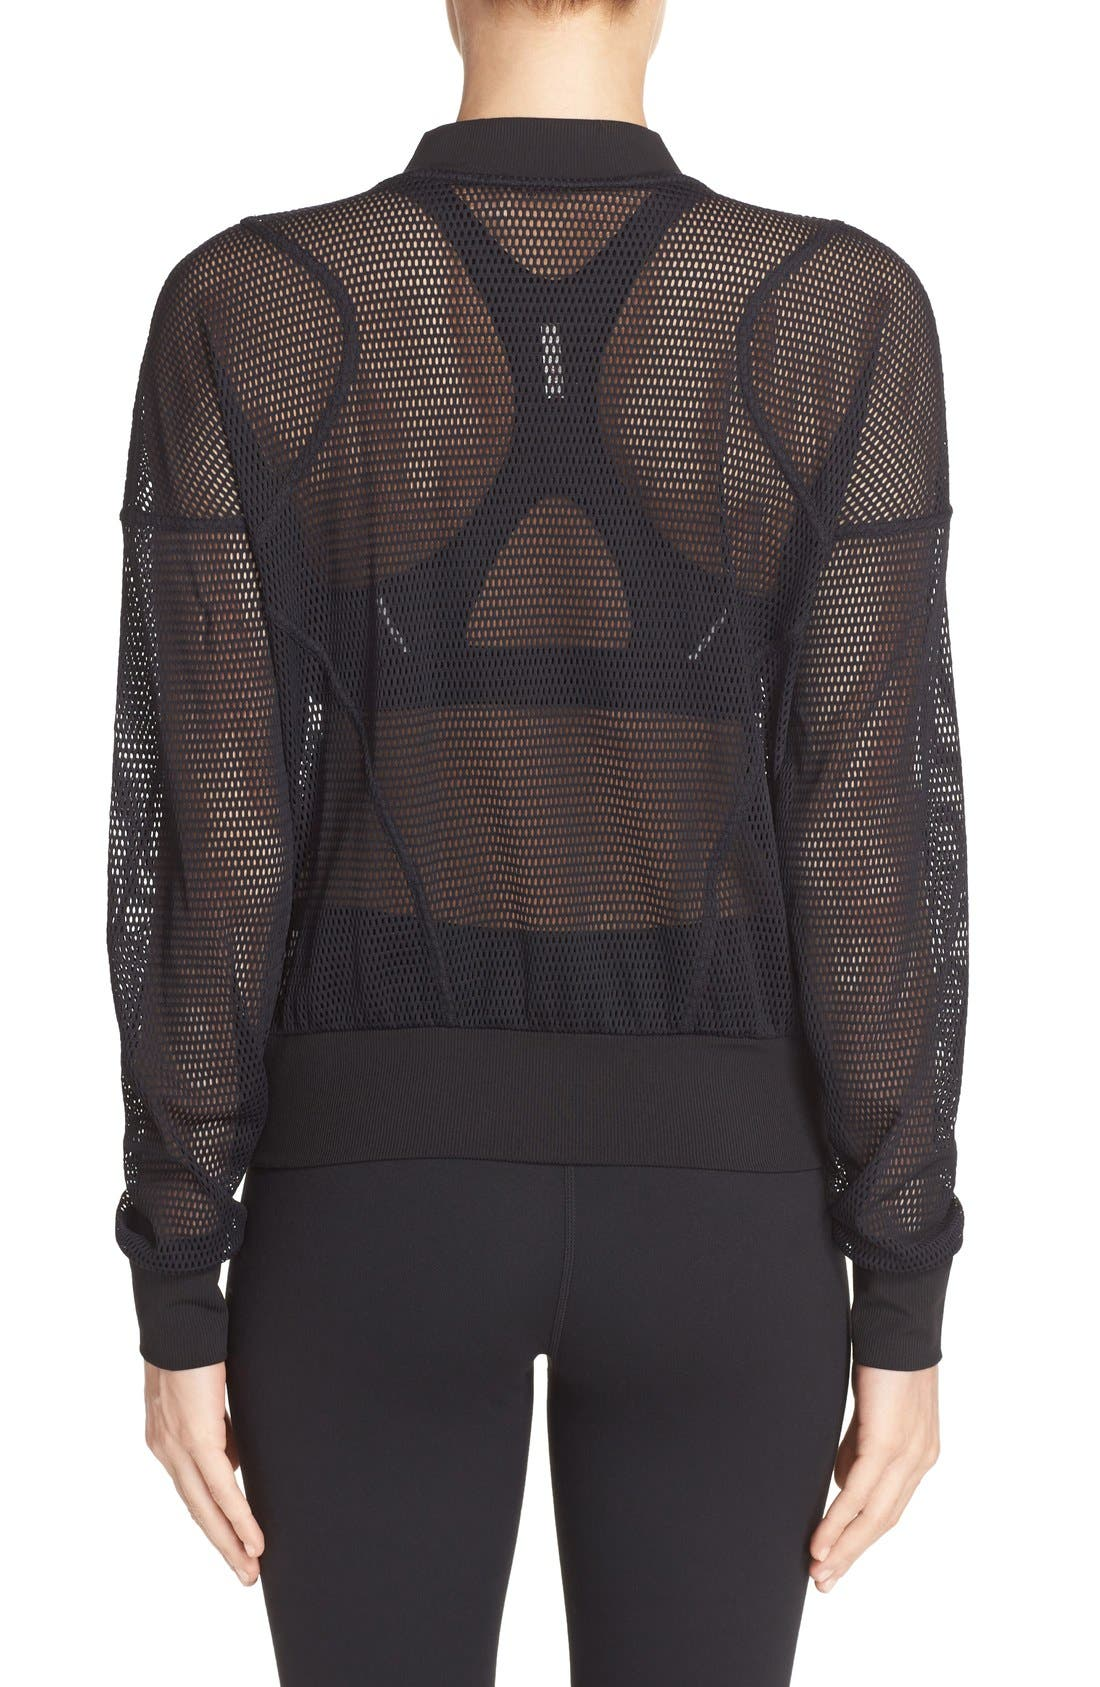 'Sculpt' Mesh Bomber Jacket,                             Alternate thumbnail 2, color,                             Black